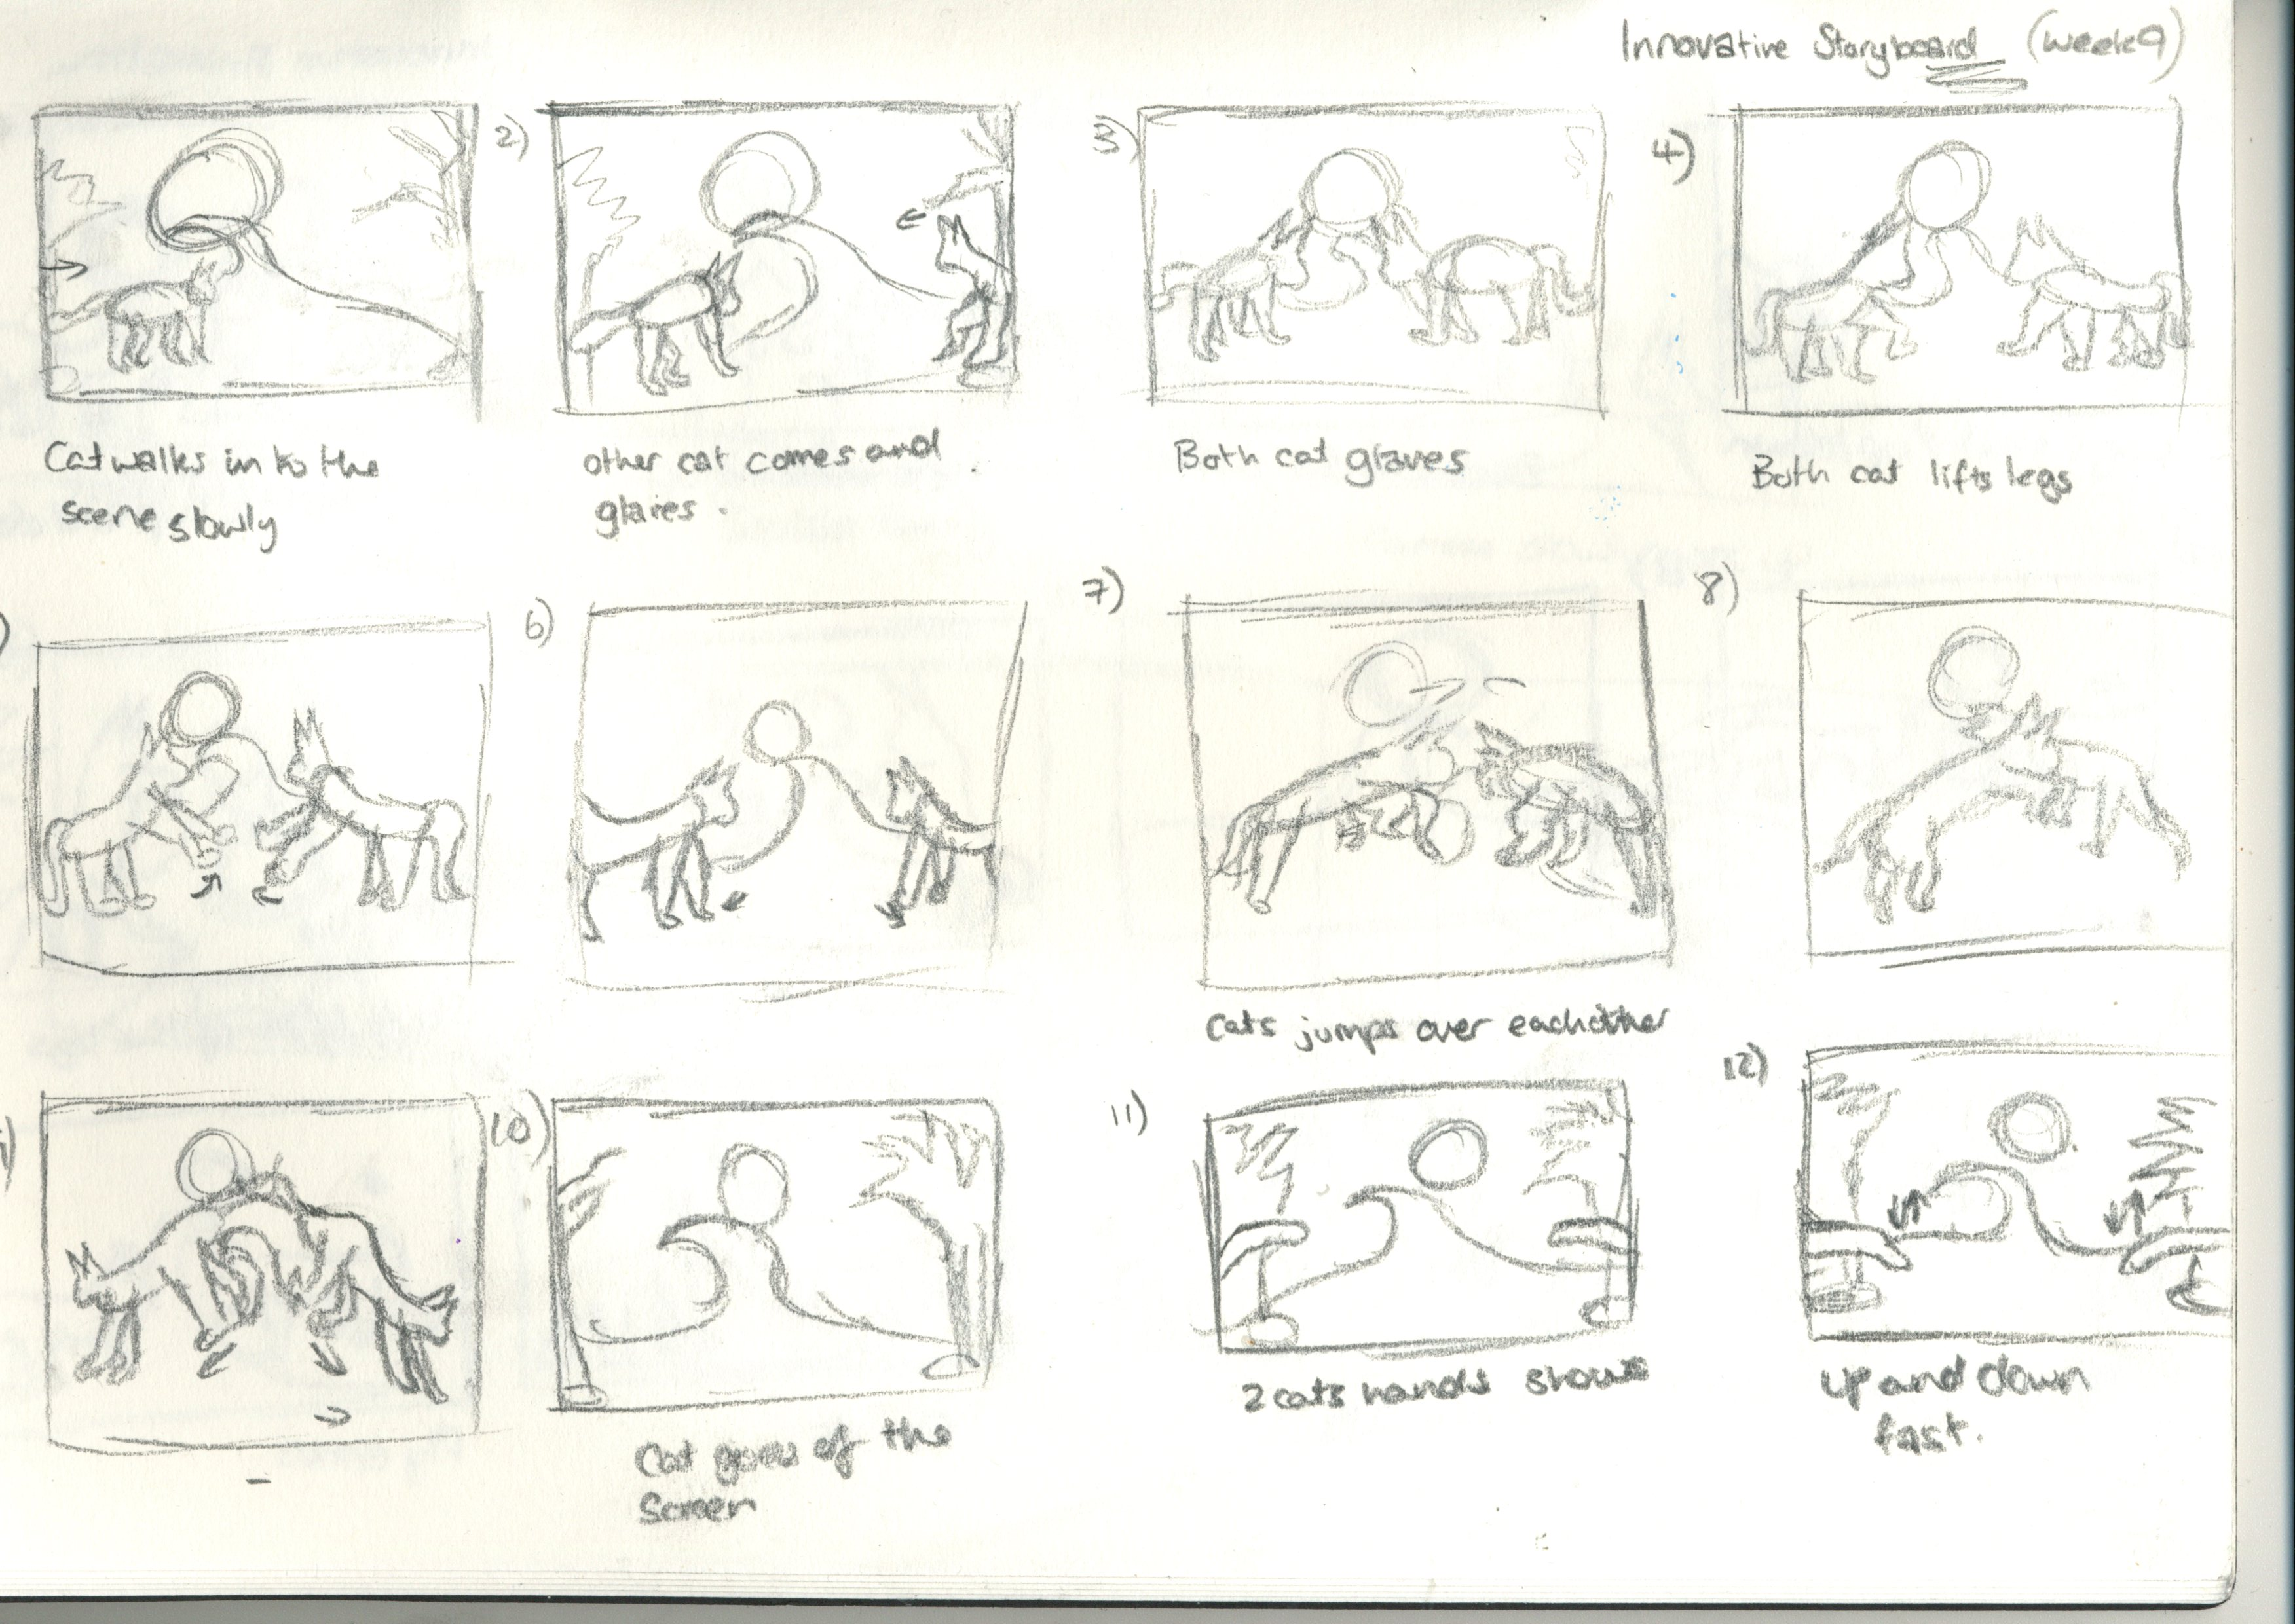 Innovative Animation Week 8: Storyboard and Production